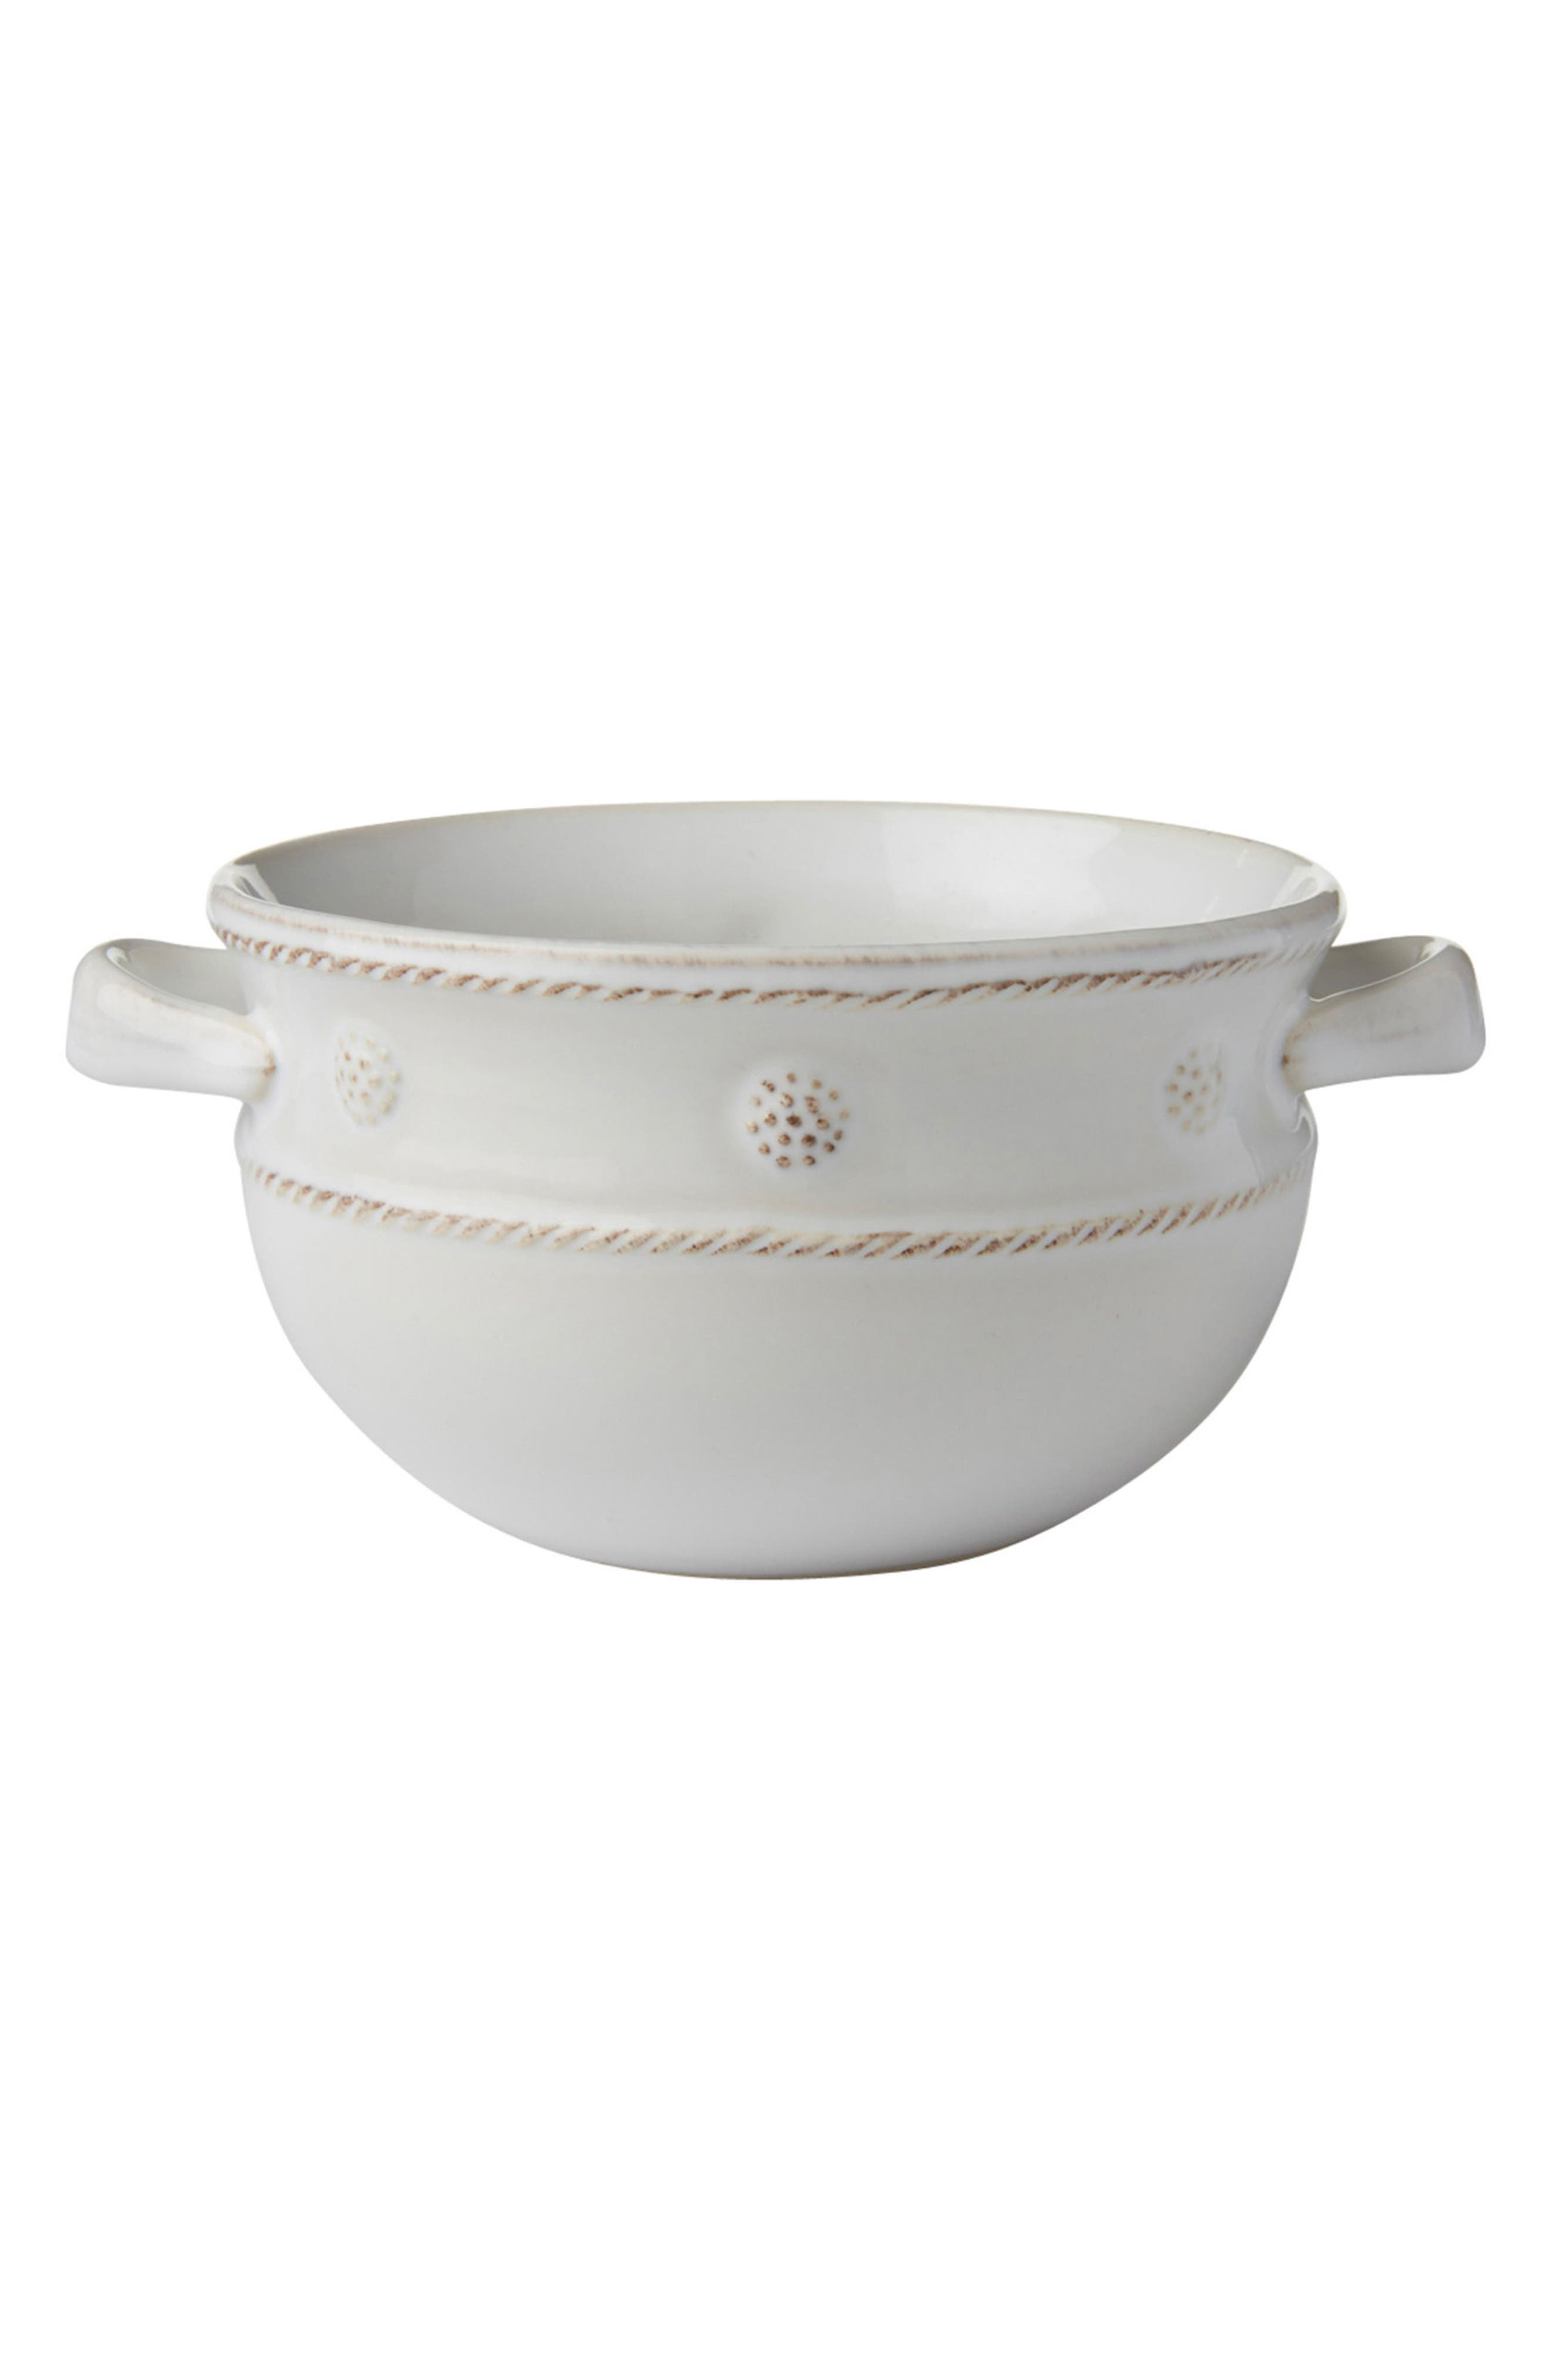 Berry & Thread Two-Handle Ceramic Bowl,                         Main,                         color, WHITEWASH